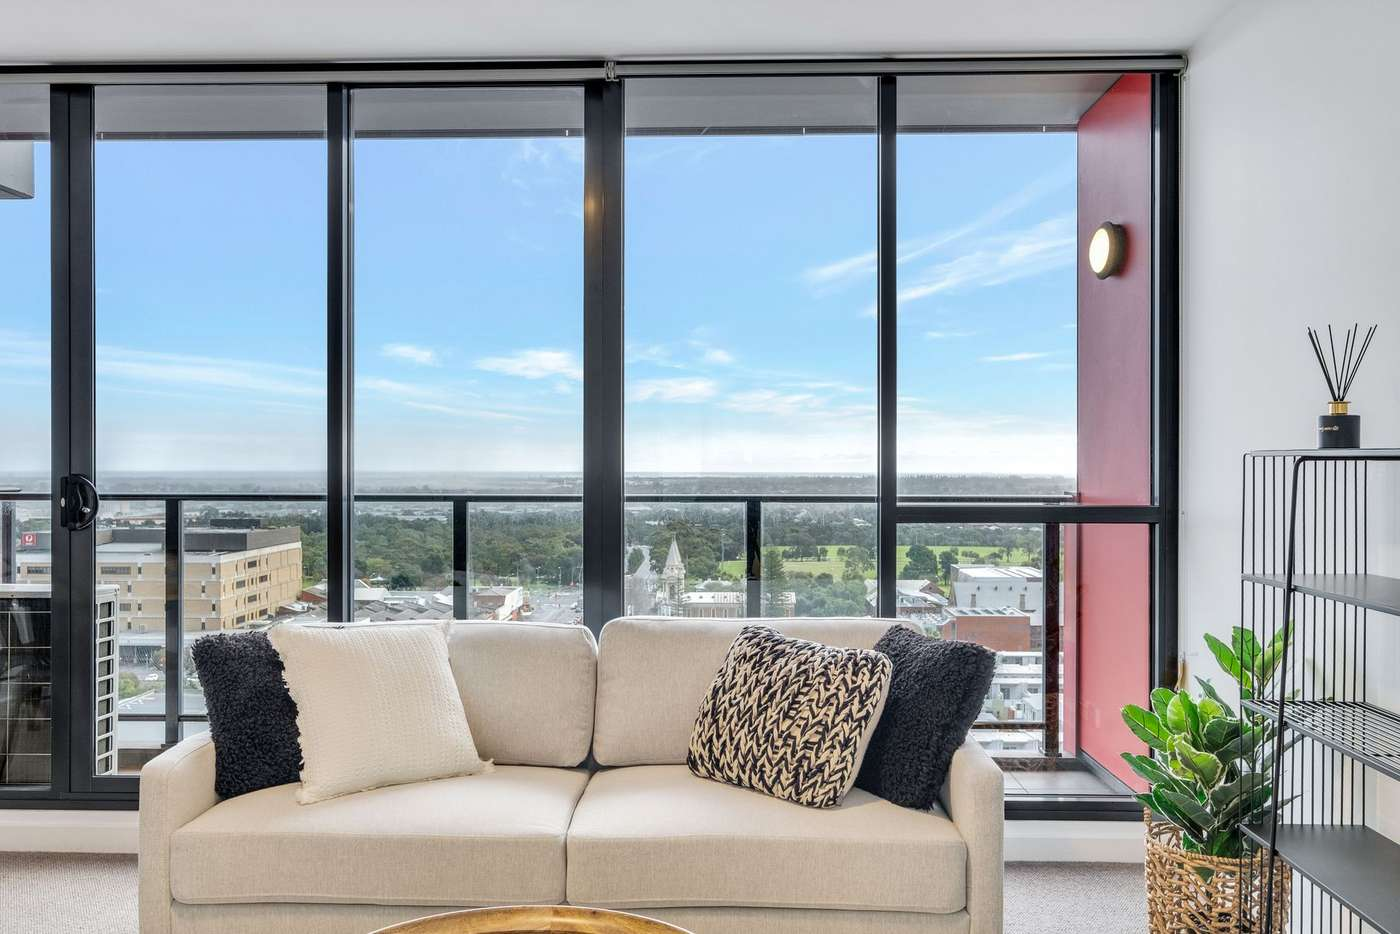 Main view of Homely apartment listing, 1609/160 Grote Street, Adelaide SA 5000